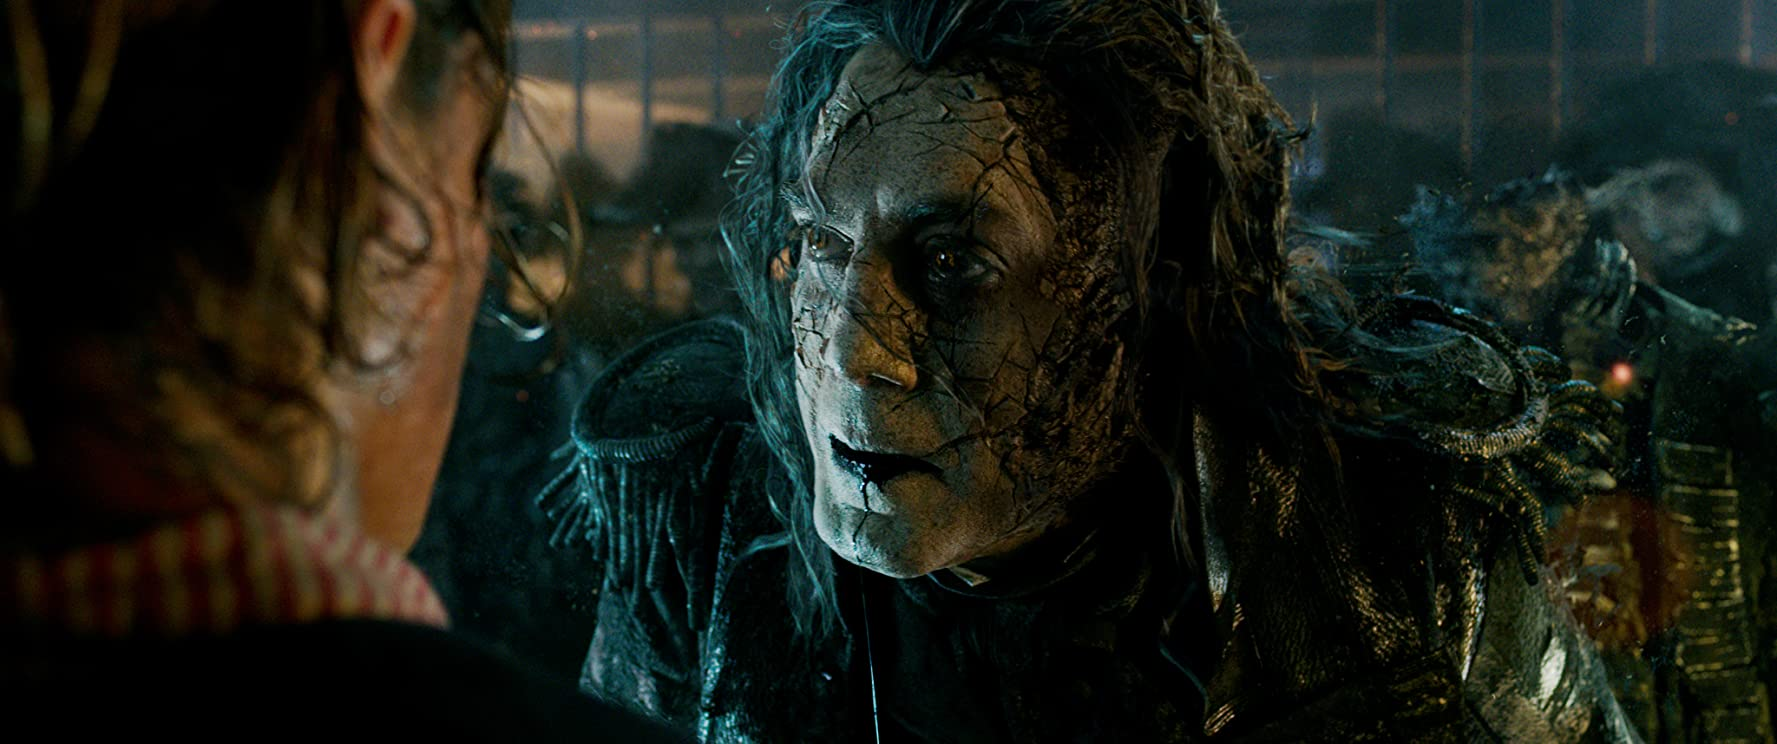 Javier Bardem and Brenton Thwaites in Pirates of the Caribbean: Dead Men Tell No Tales (2017)